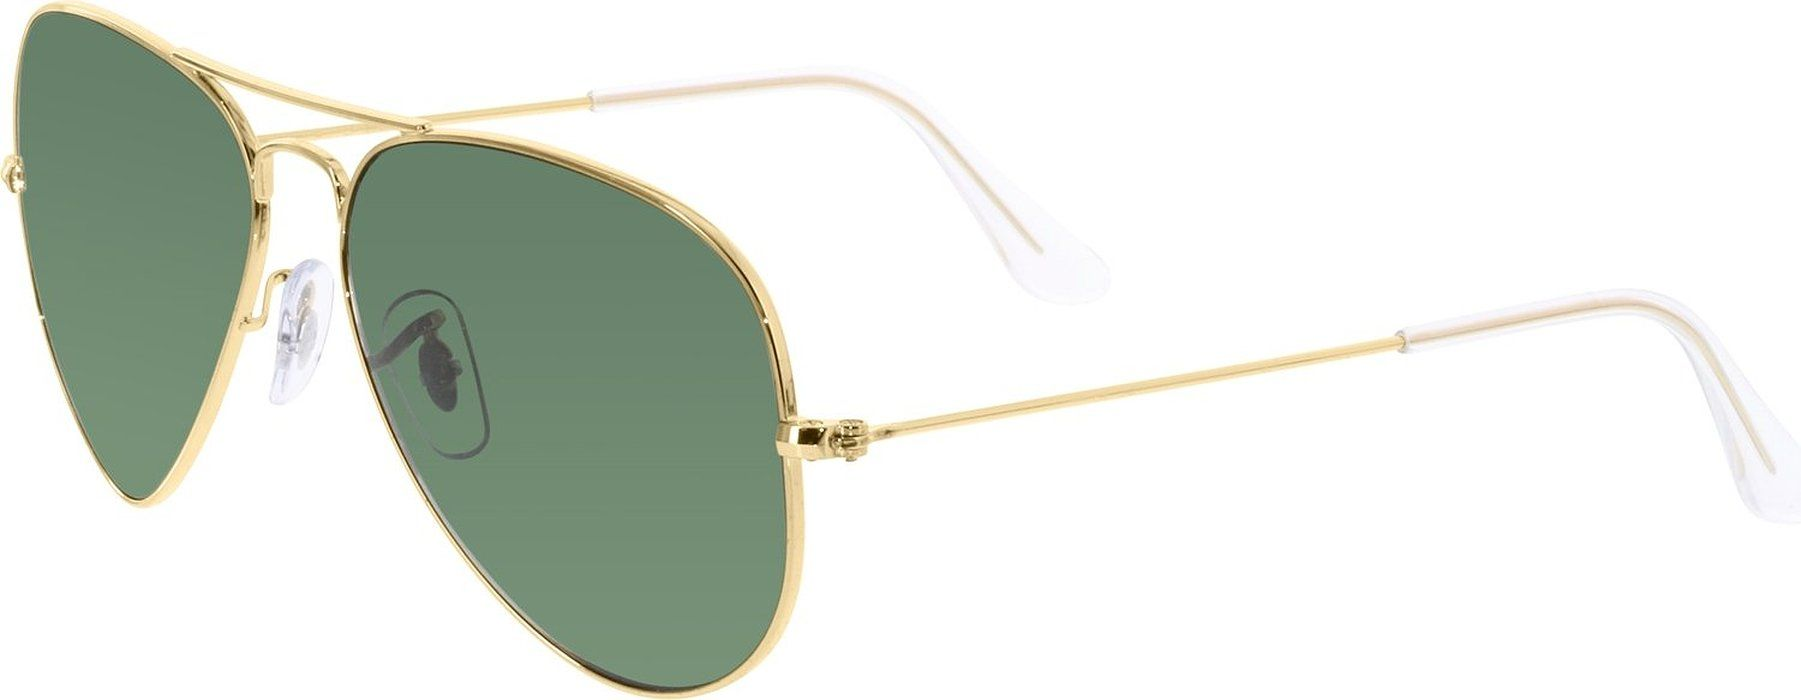 b9b56d72e6 RAY BAN RB 3025 001 58 RAYBAN NATURAL GREEN POLARIZED LENS   ARISTA FRAME  SIZE 55-14-135 SUNGLASSES